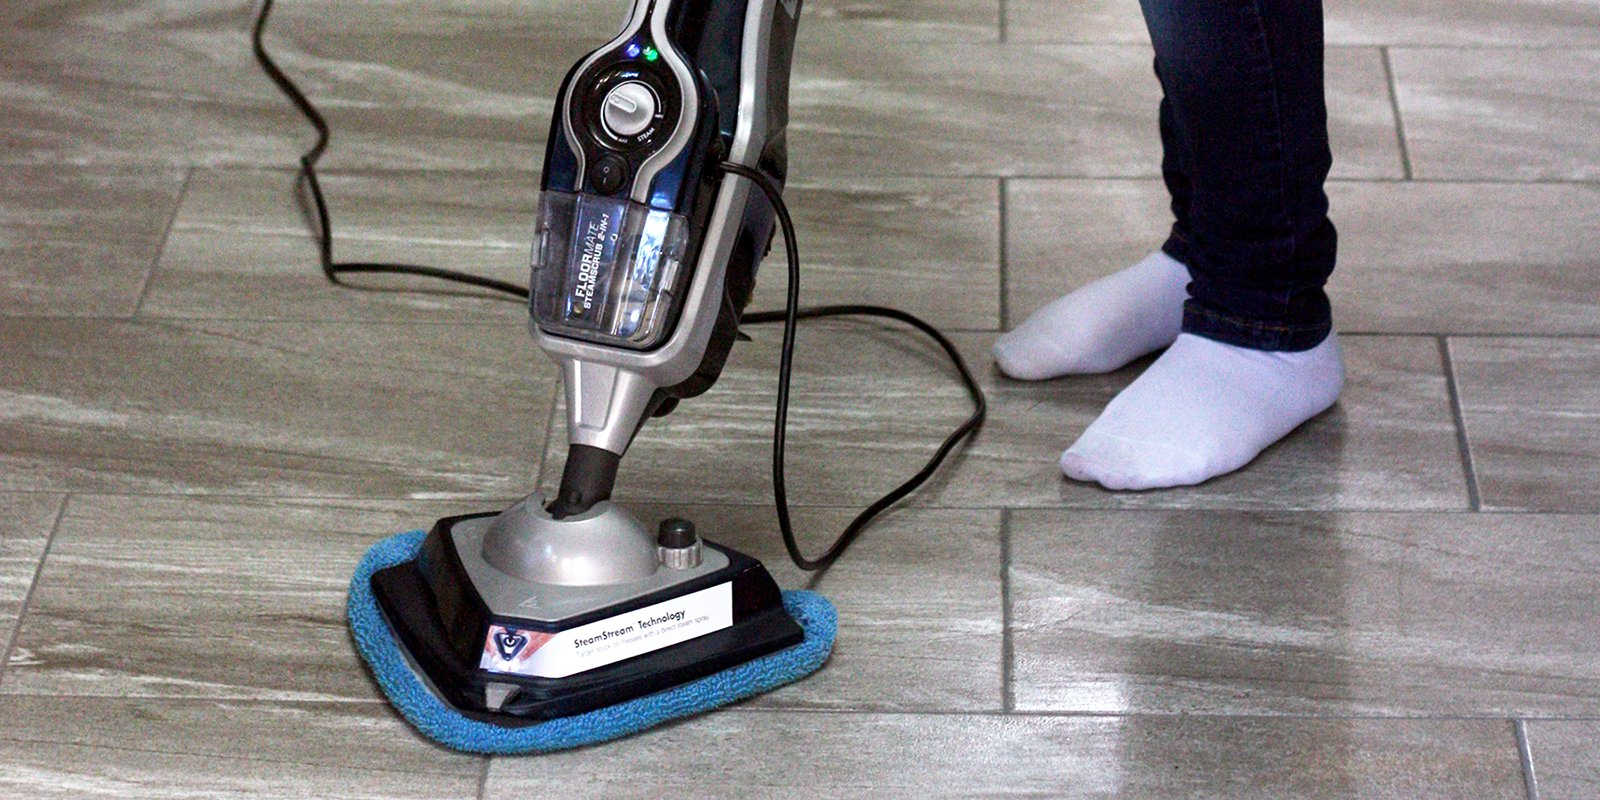 Cole S Carpet Cleaner Hire Adelaide Carpet Vidalondon